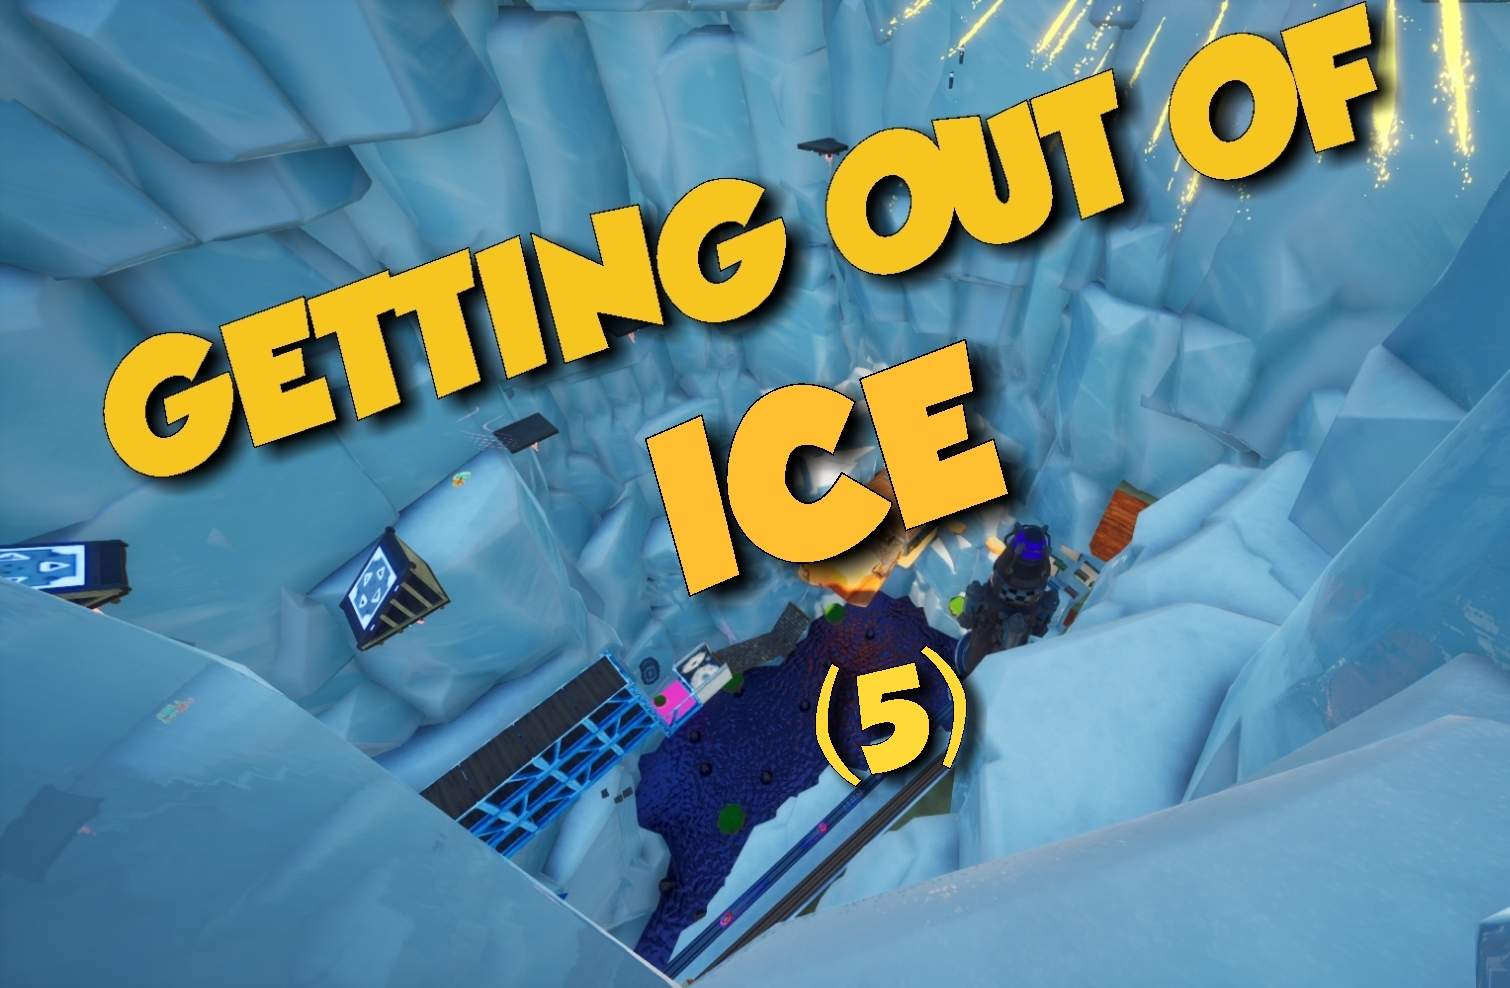 GETTING OUT OF ICE